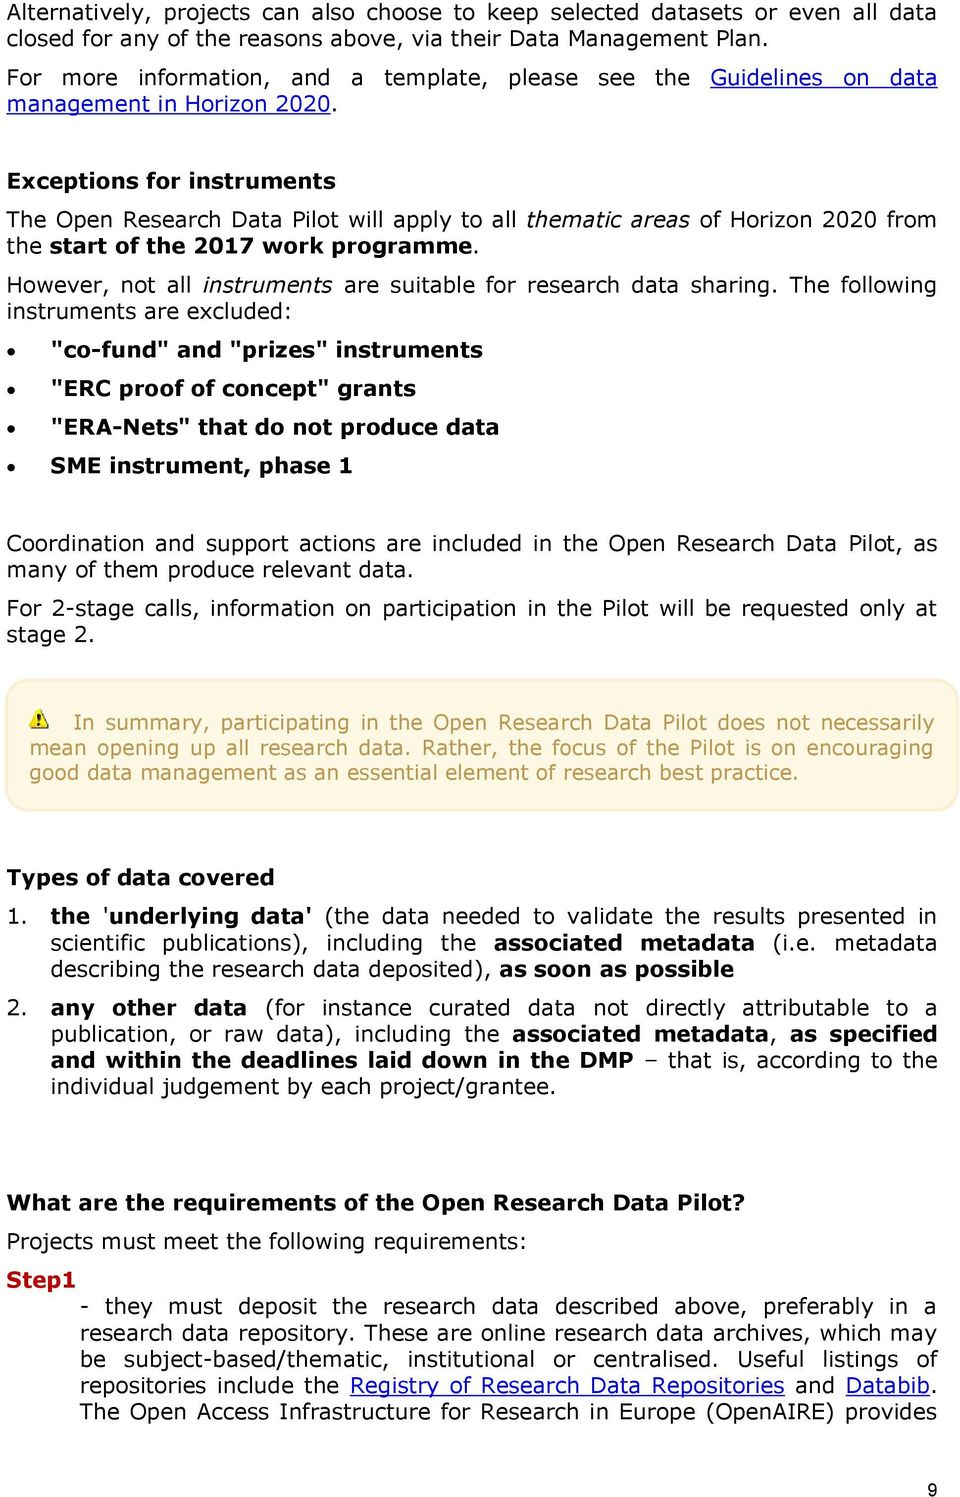 Exceptions for instruments The Open Research Data Pilot will apply to all thematic areas of Horizon 2020 from the start of the 2017 work programme.